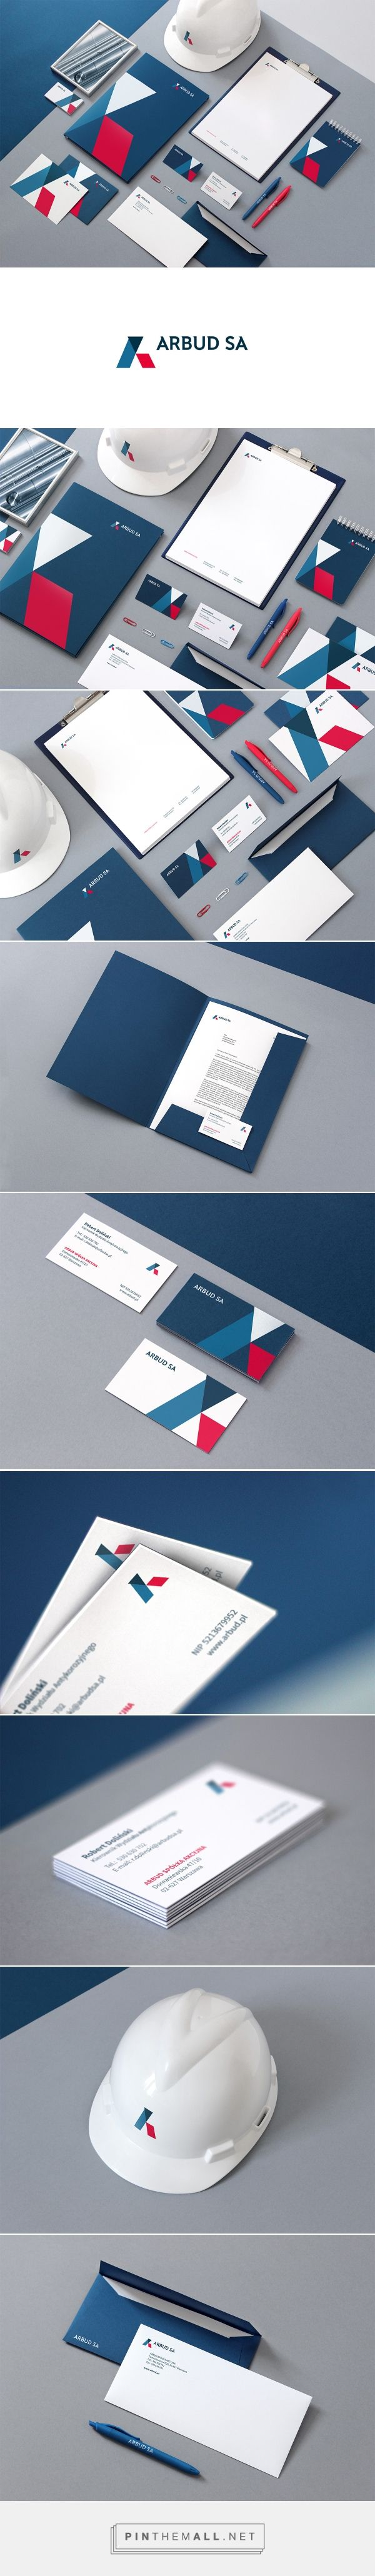 ARBUD SA Branding on Behance | Fivestar Branding – Design and Branding Agency & Inspiration Gallery